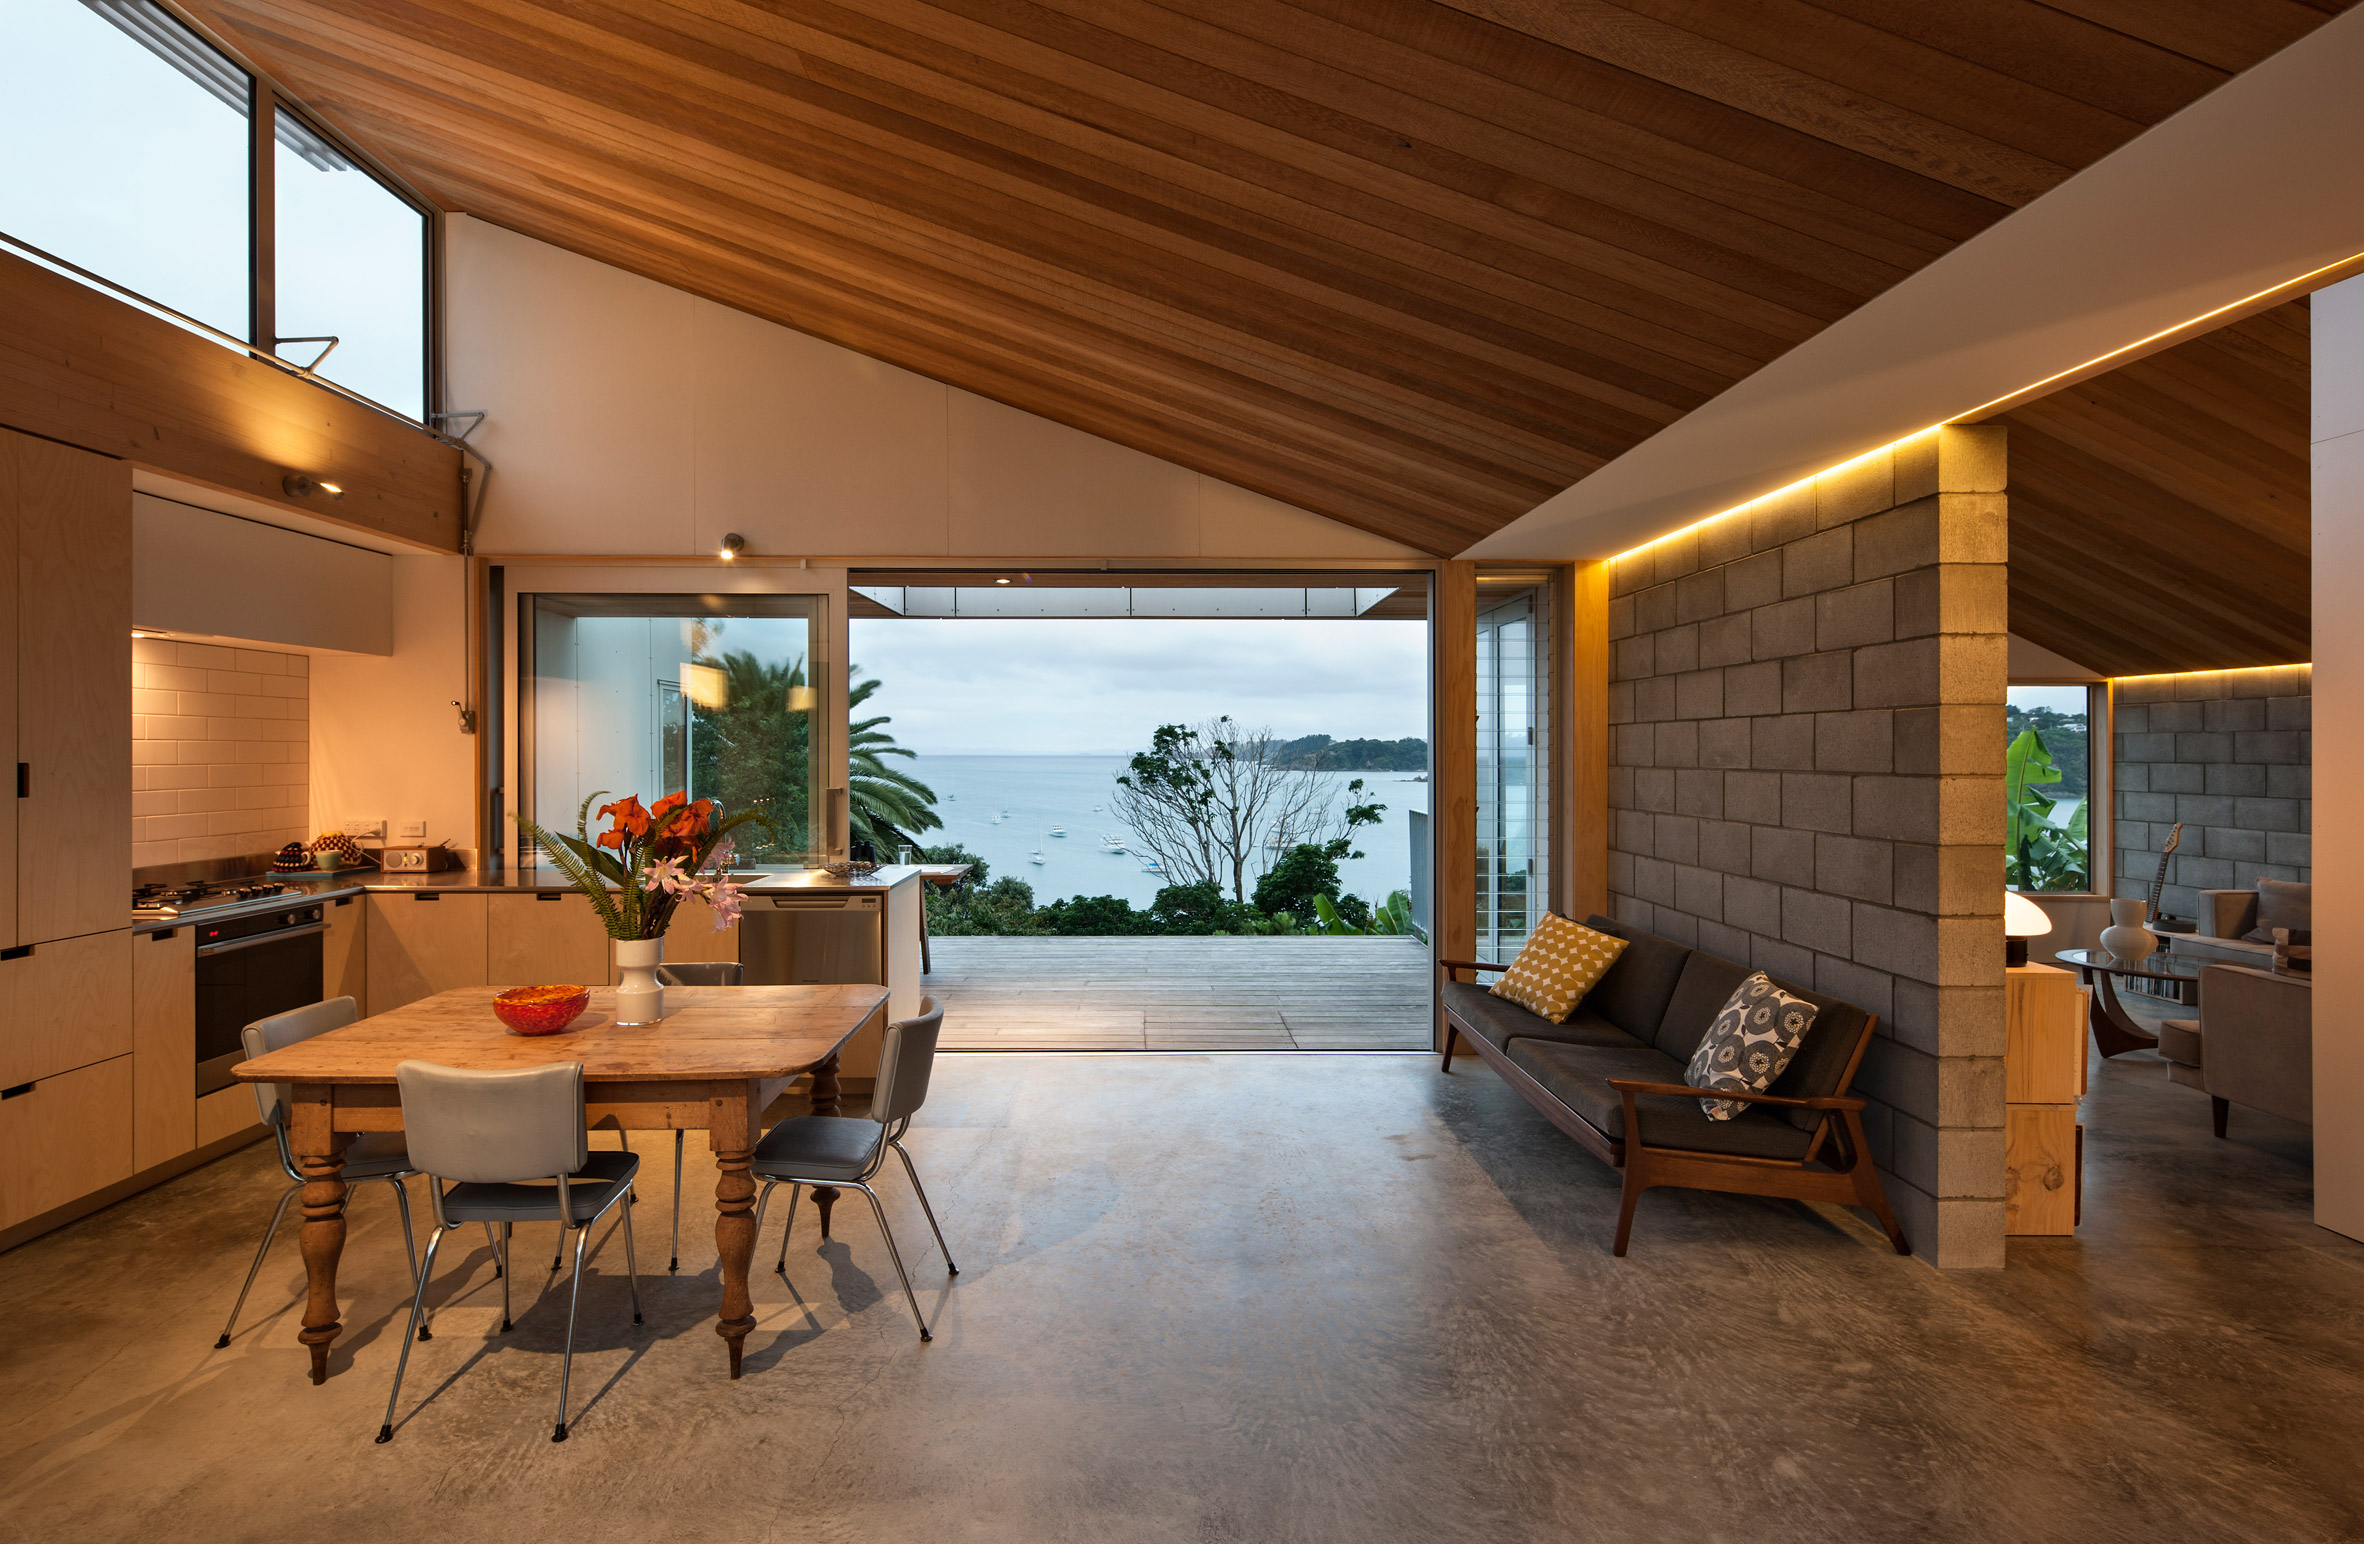 Vaughn McQuarrie completes island cottage overlooking New Zealand's Hauraki Gulf